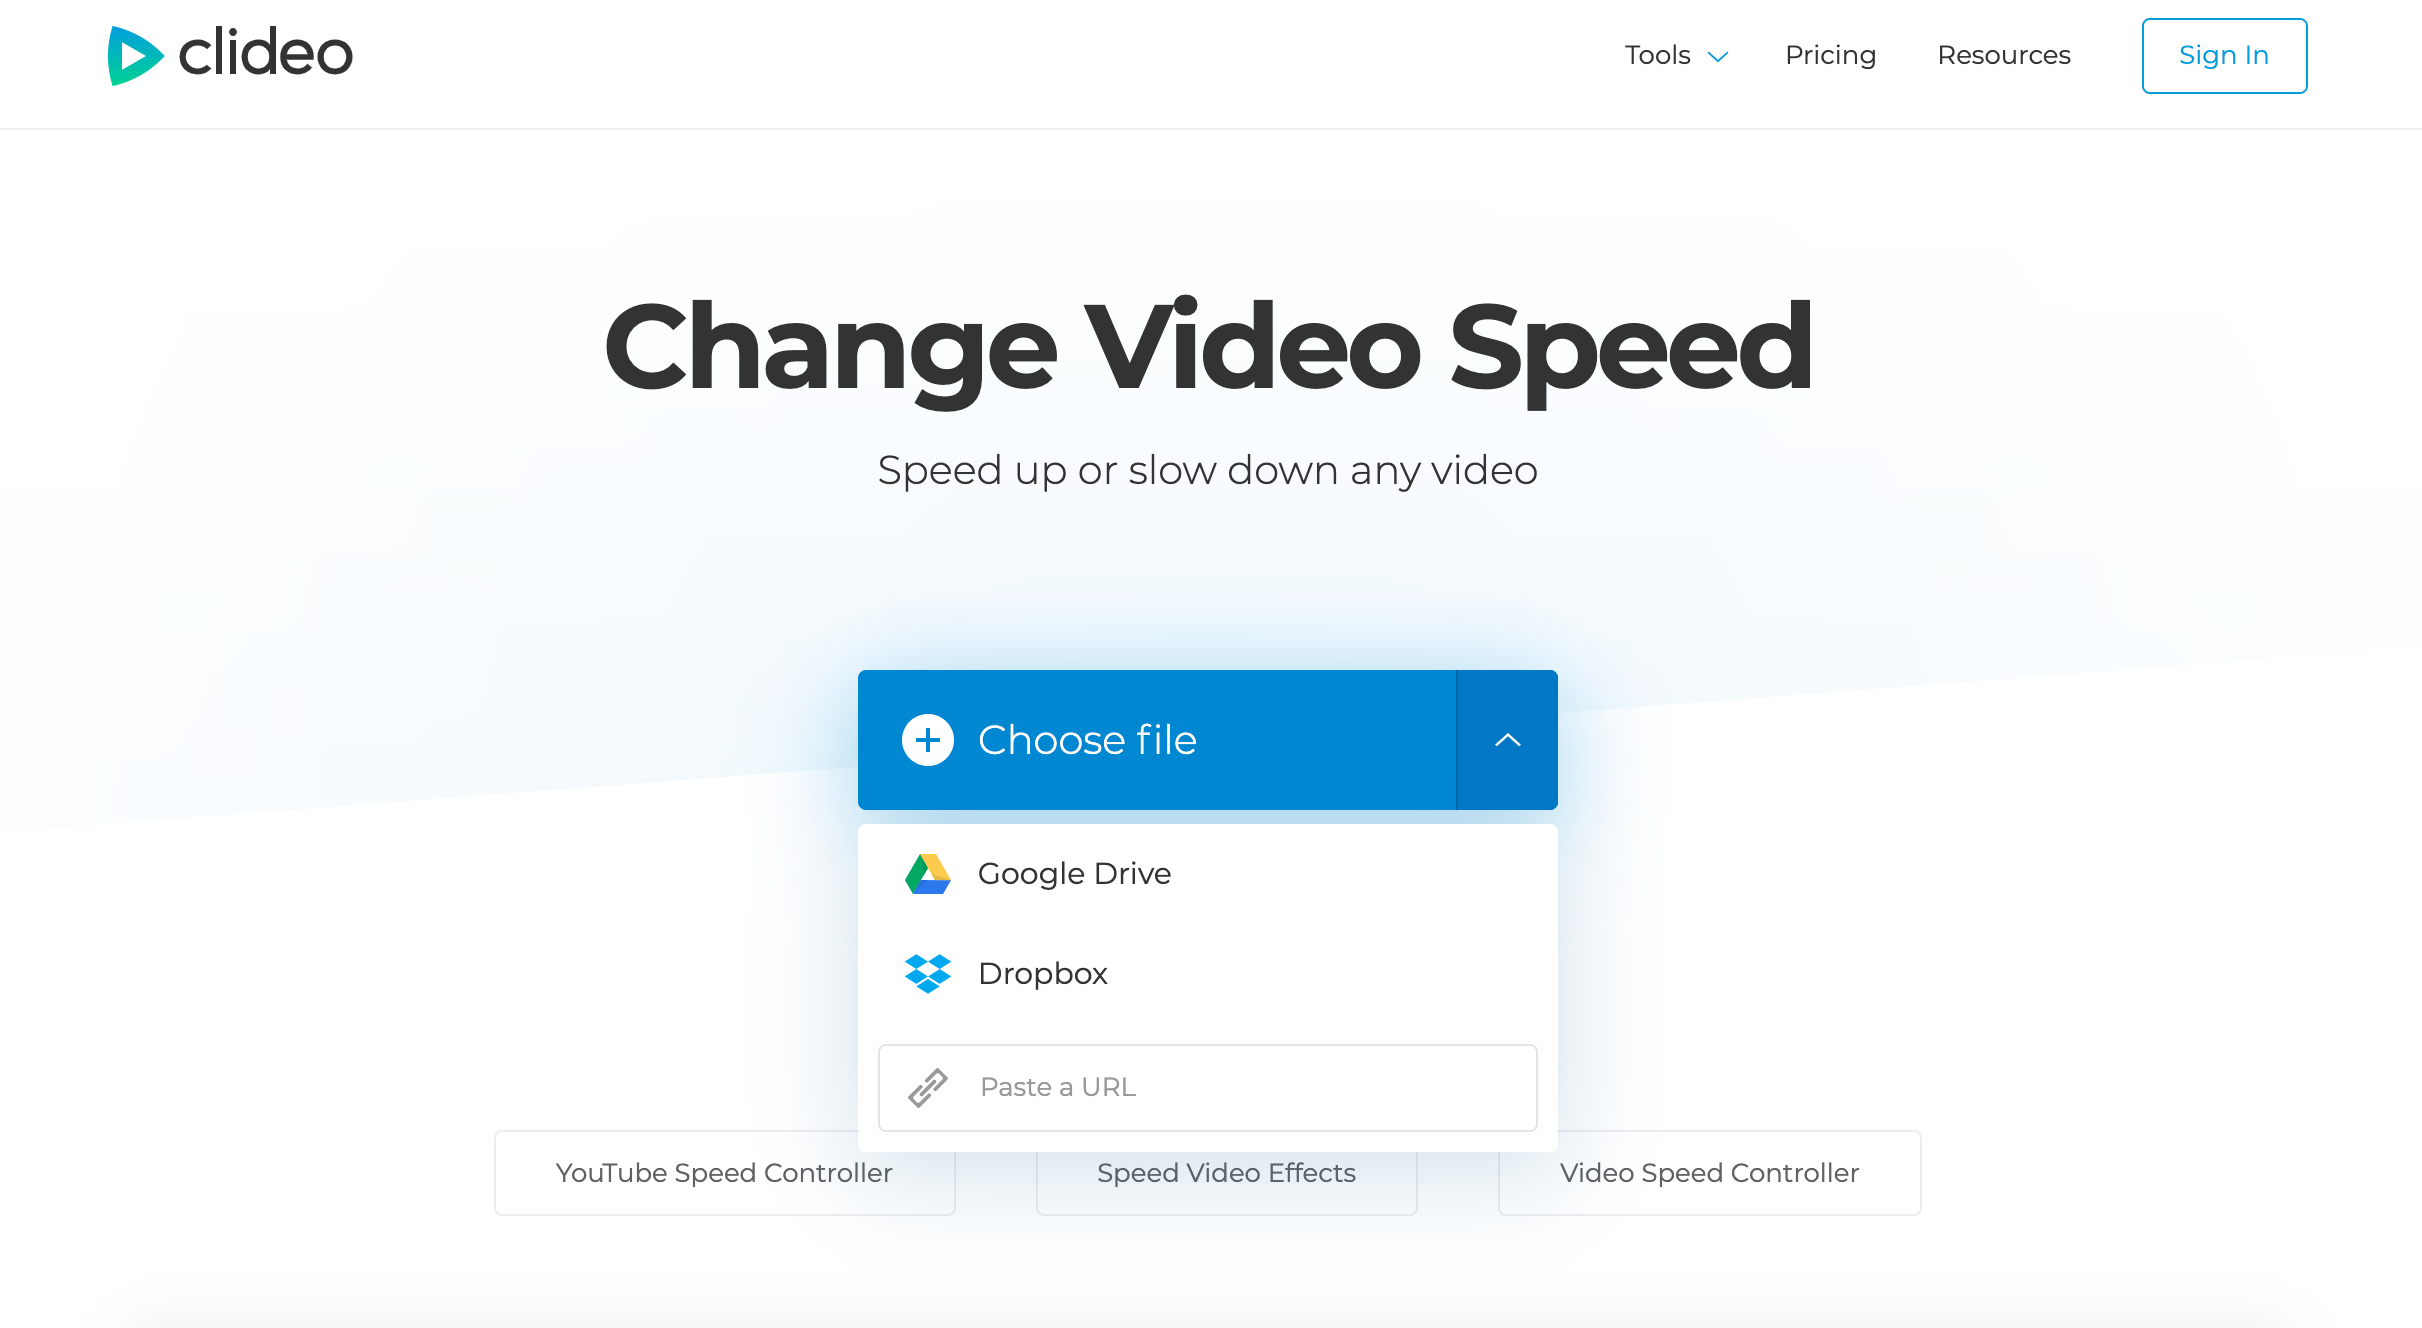 Upload video to make slow motion on iPhone 5